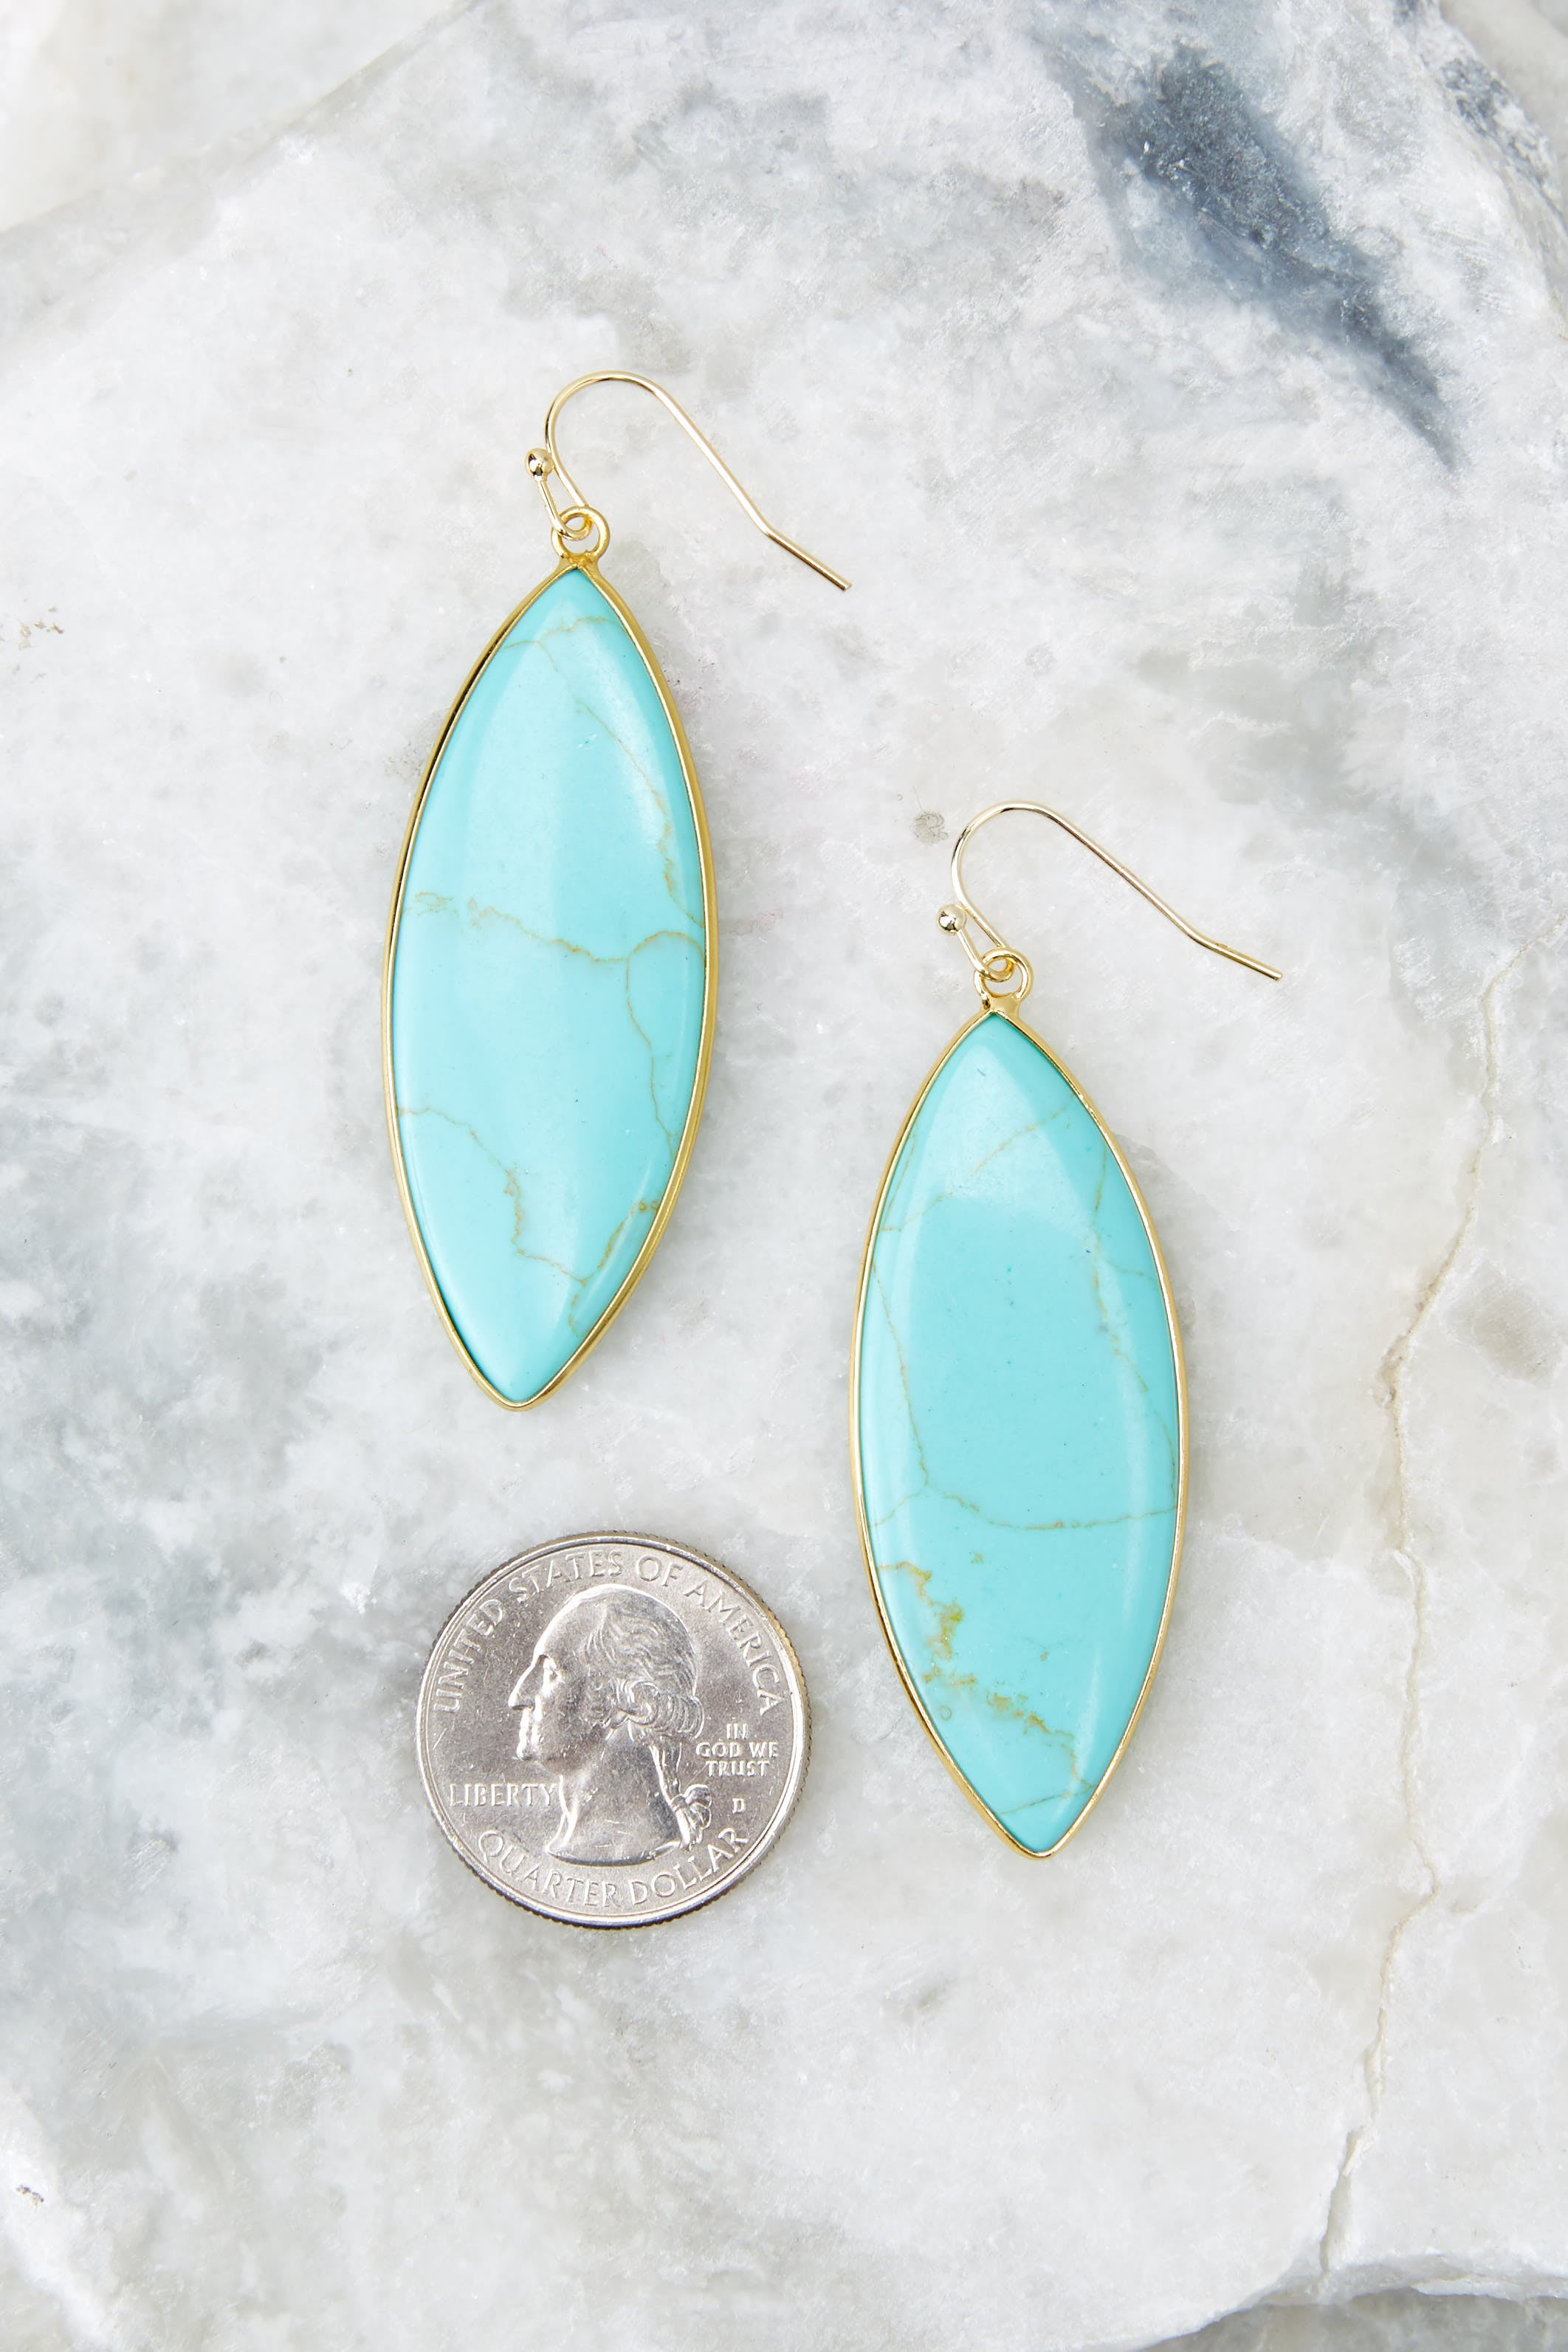 If I Know Me Turquoise Earrings